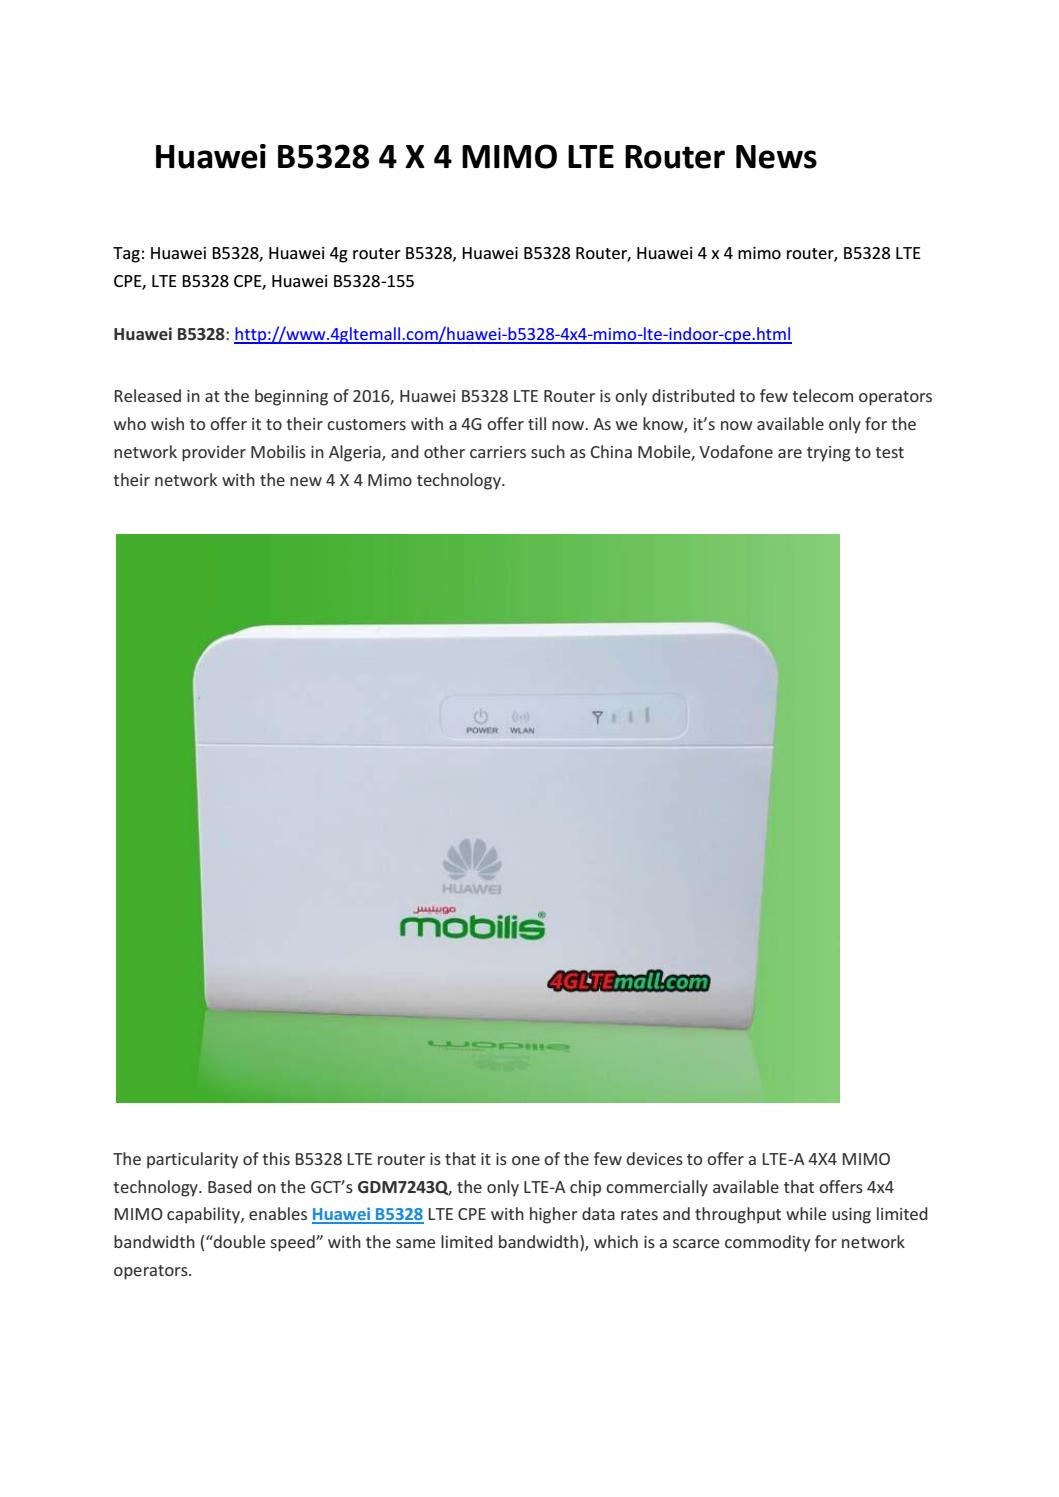 Huawei B5328 4 X 4 MIMO LTE Router News by Lte Mall - issuu